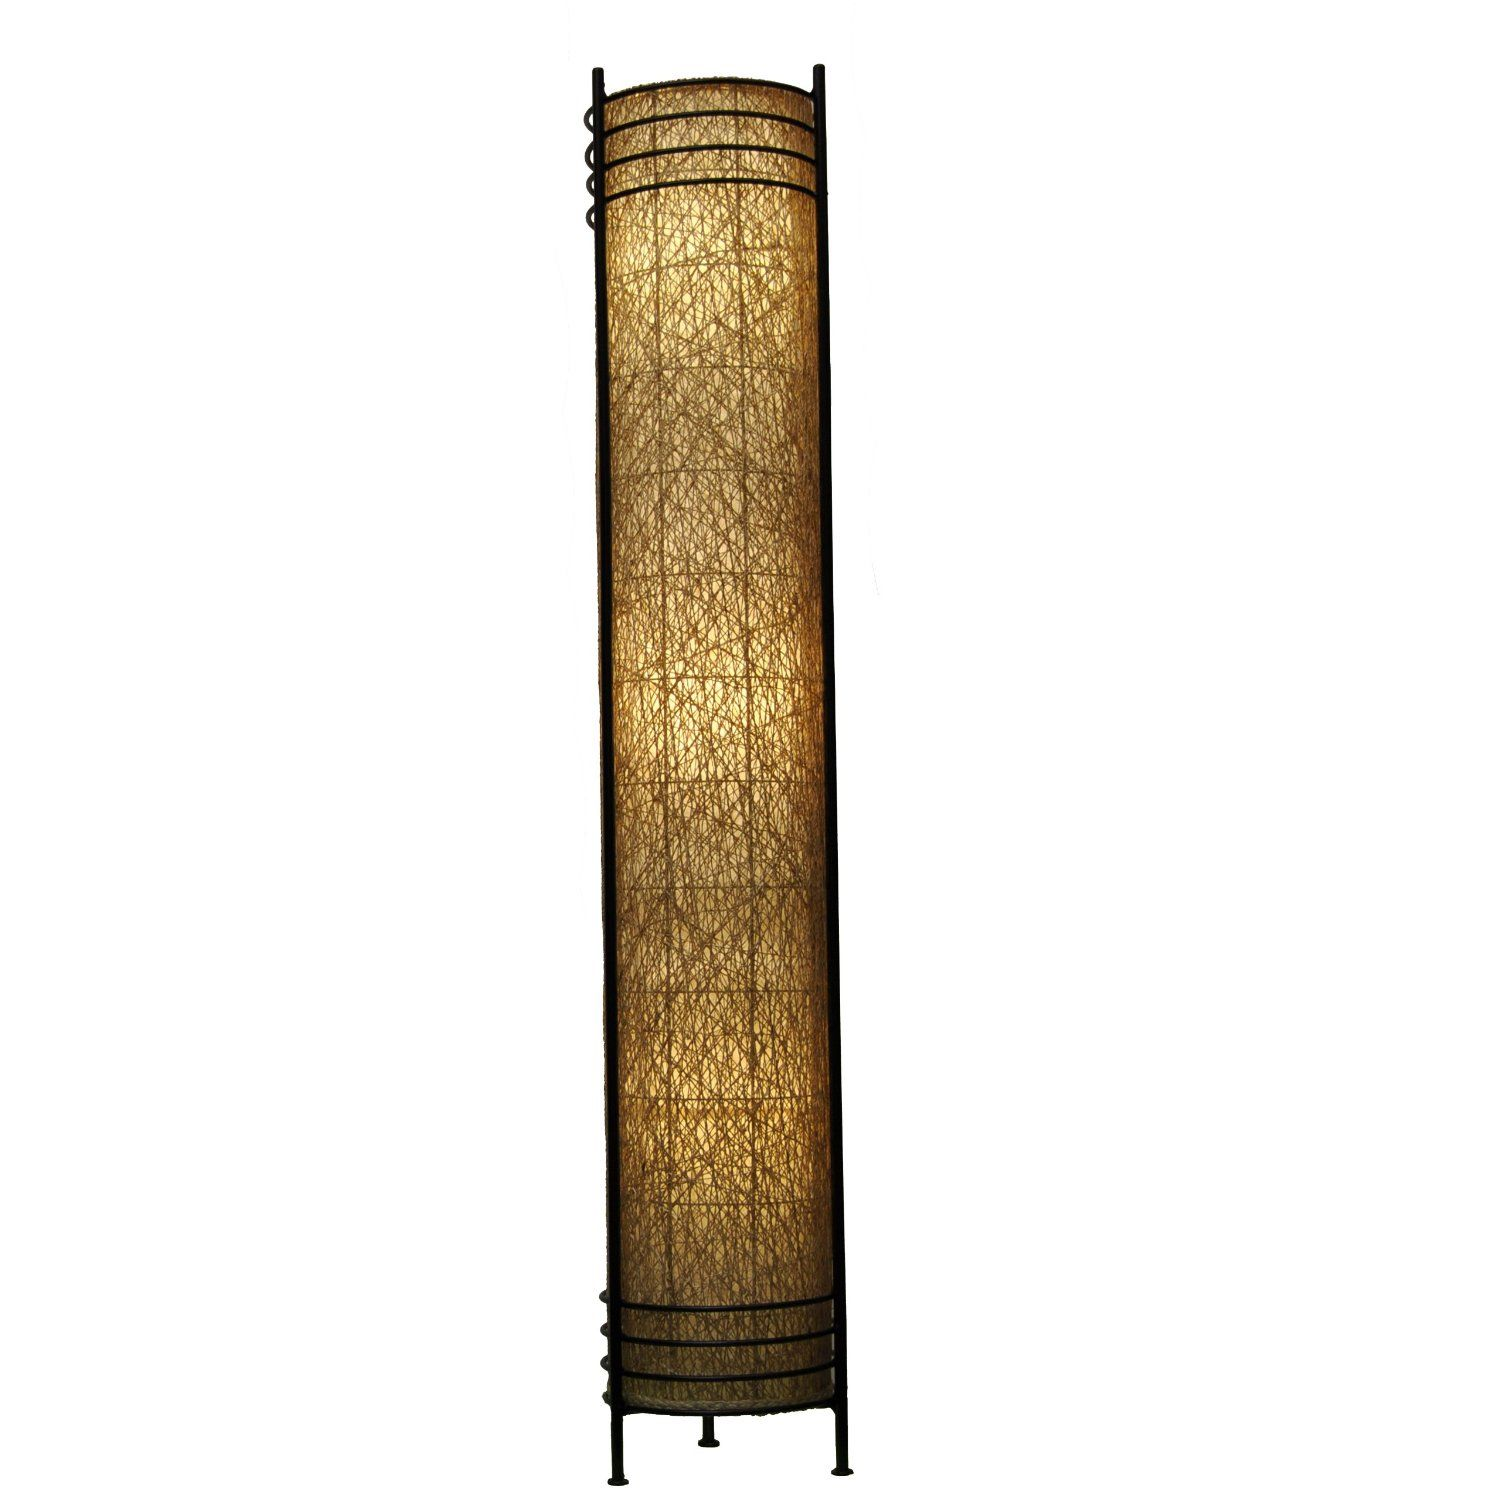 Elegant Amazon.com   Eangee Tower Series Floor Lamp, 48 Inch Tall, Natural